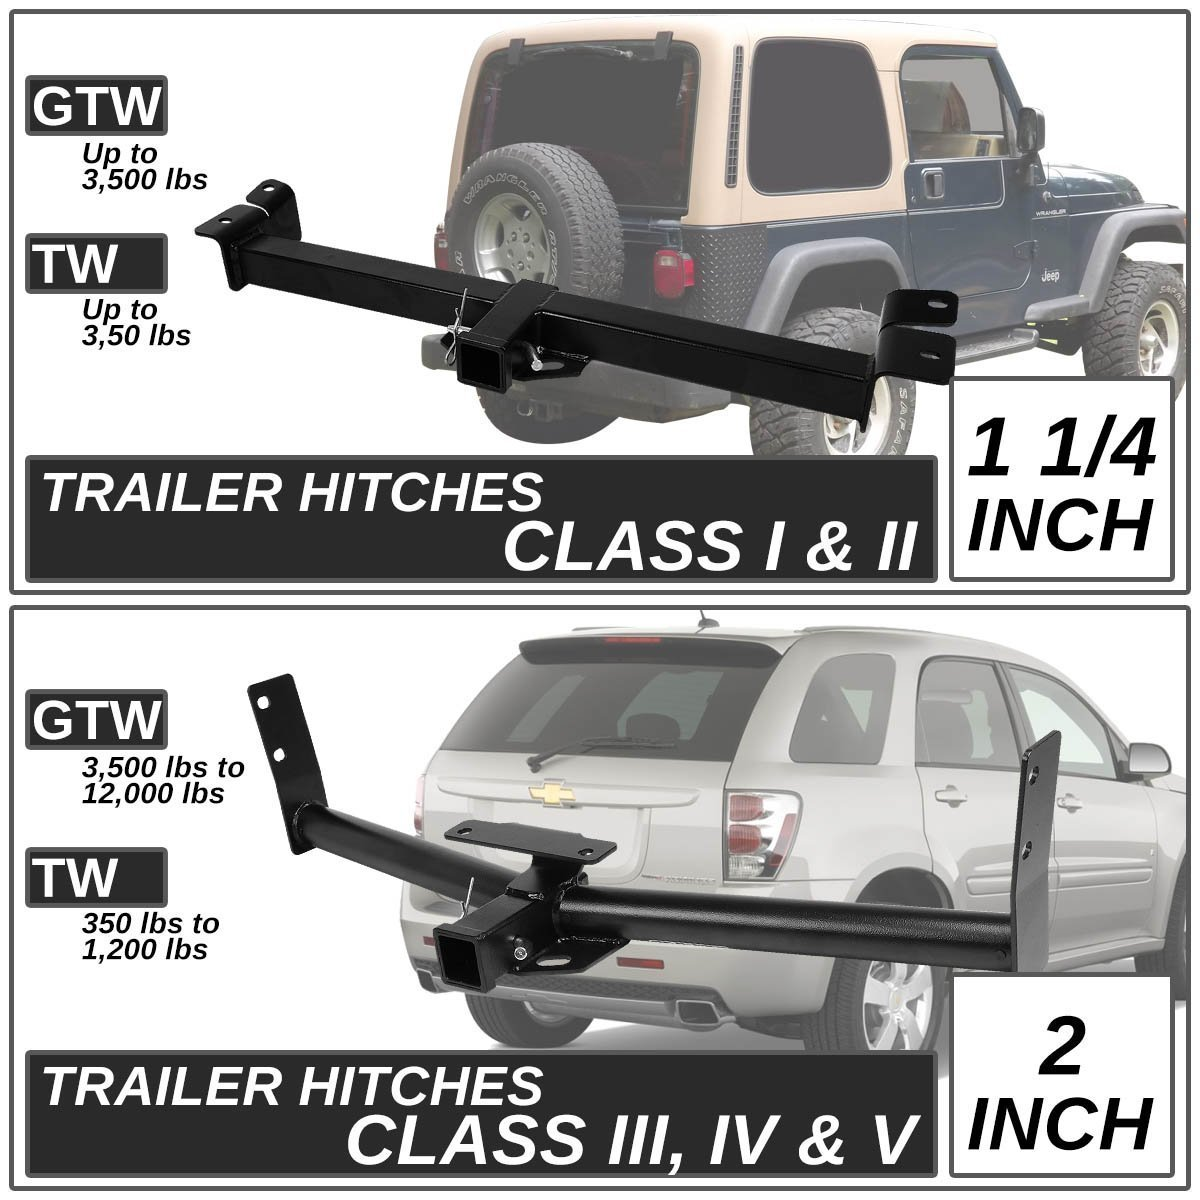 Acura MDX YD Class III Trailer Hitch Receiver Rear Tow Kit - Tow hitch for acura mdx